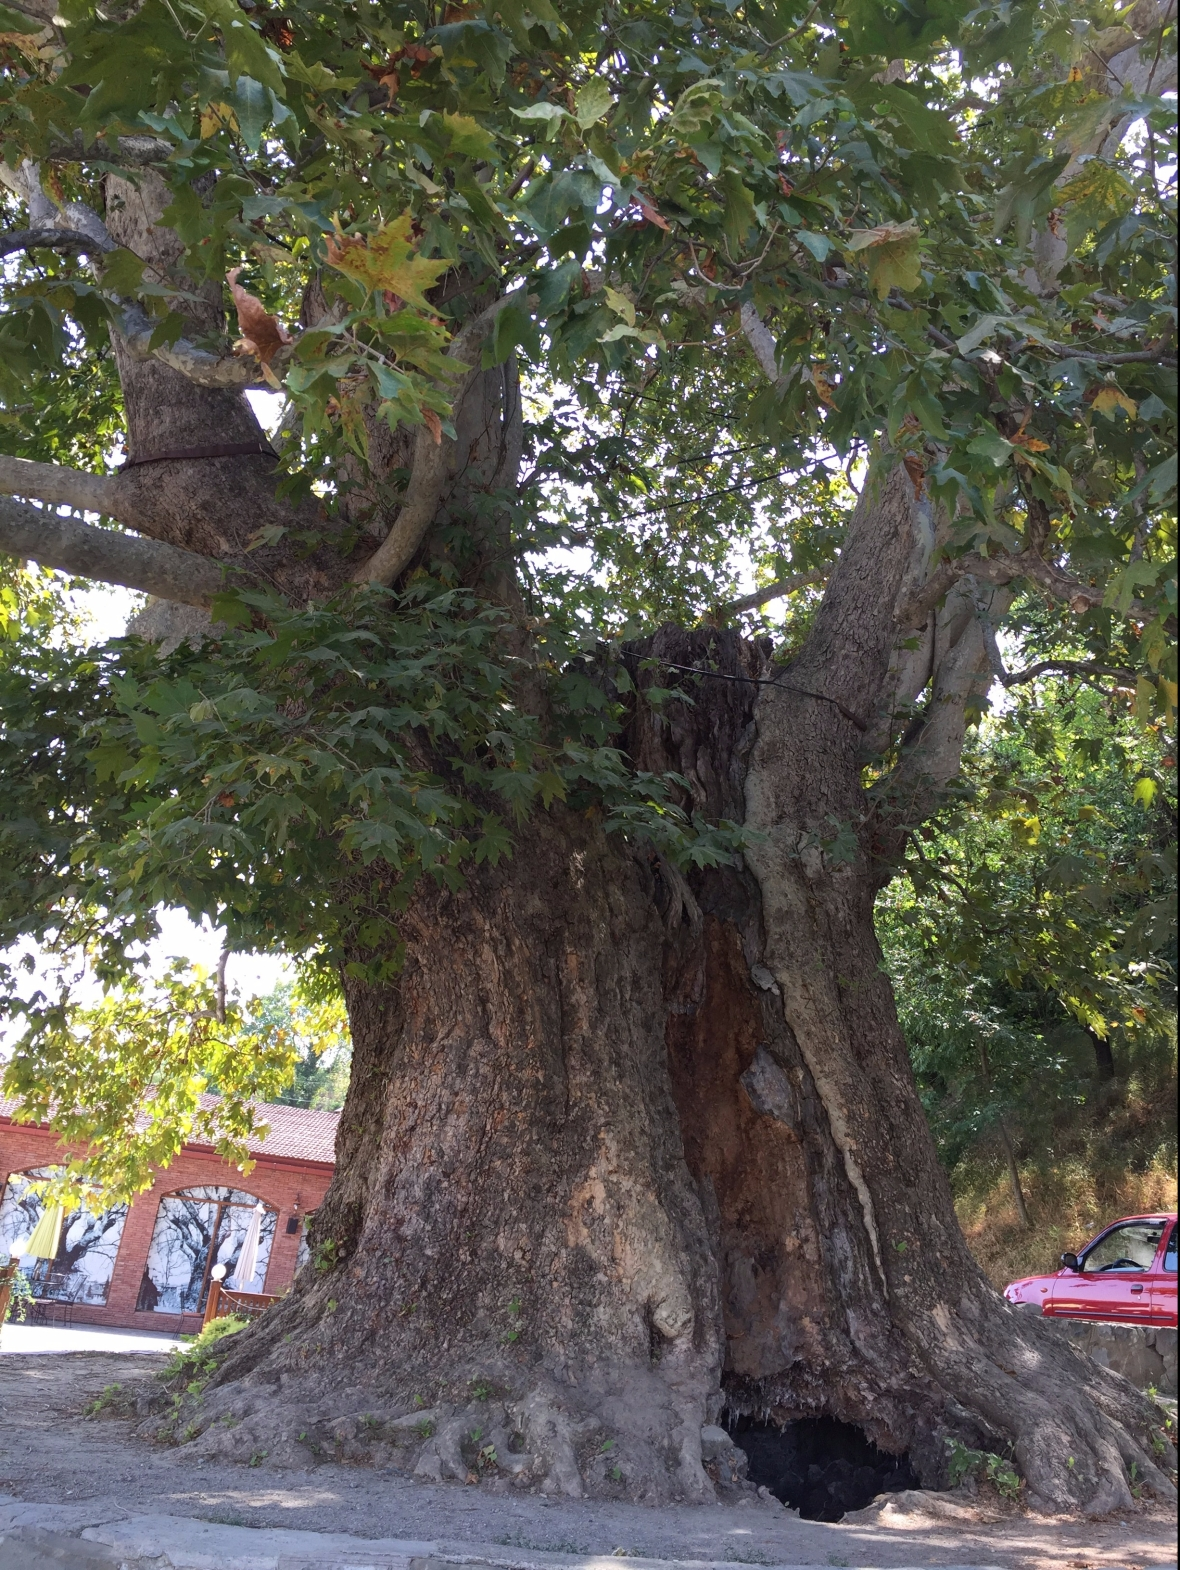 900 Year Old Giant Plane Tree in Telavi